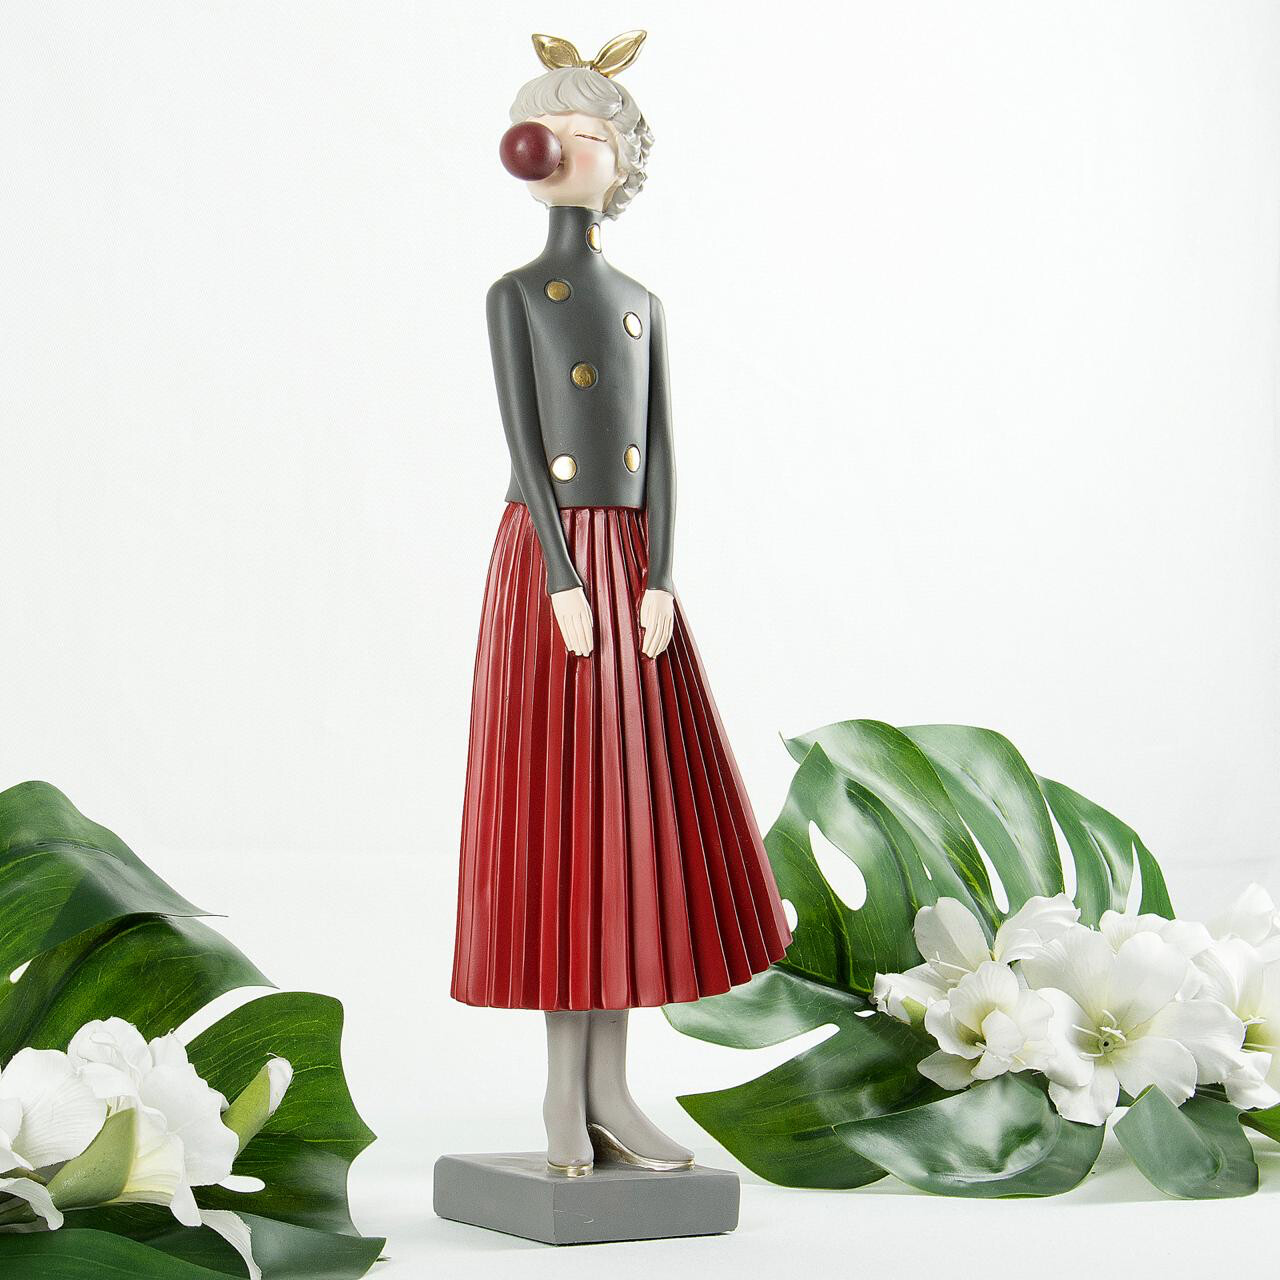 Red Skirt Lady Sculpture - Cool Ornaments